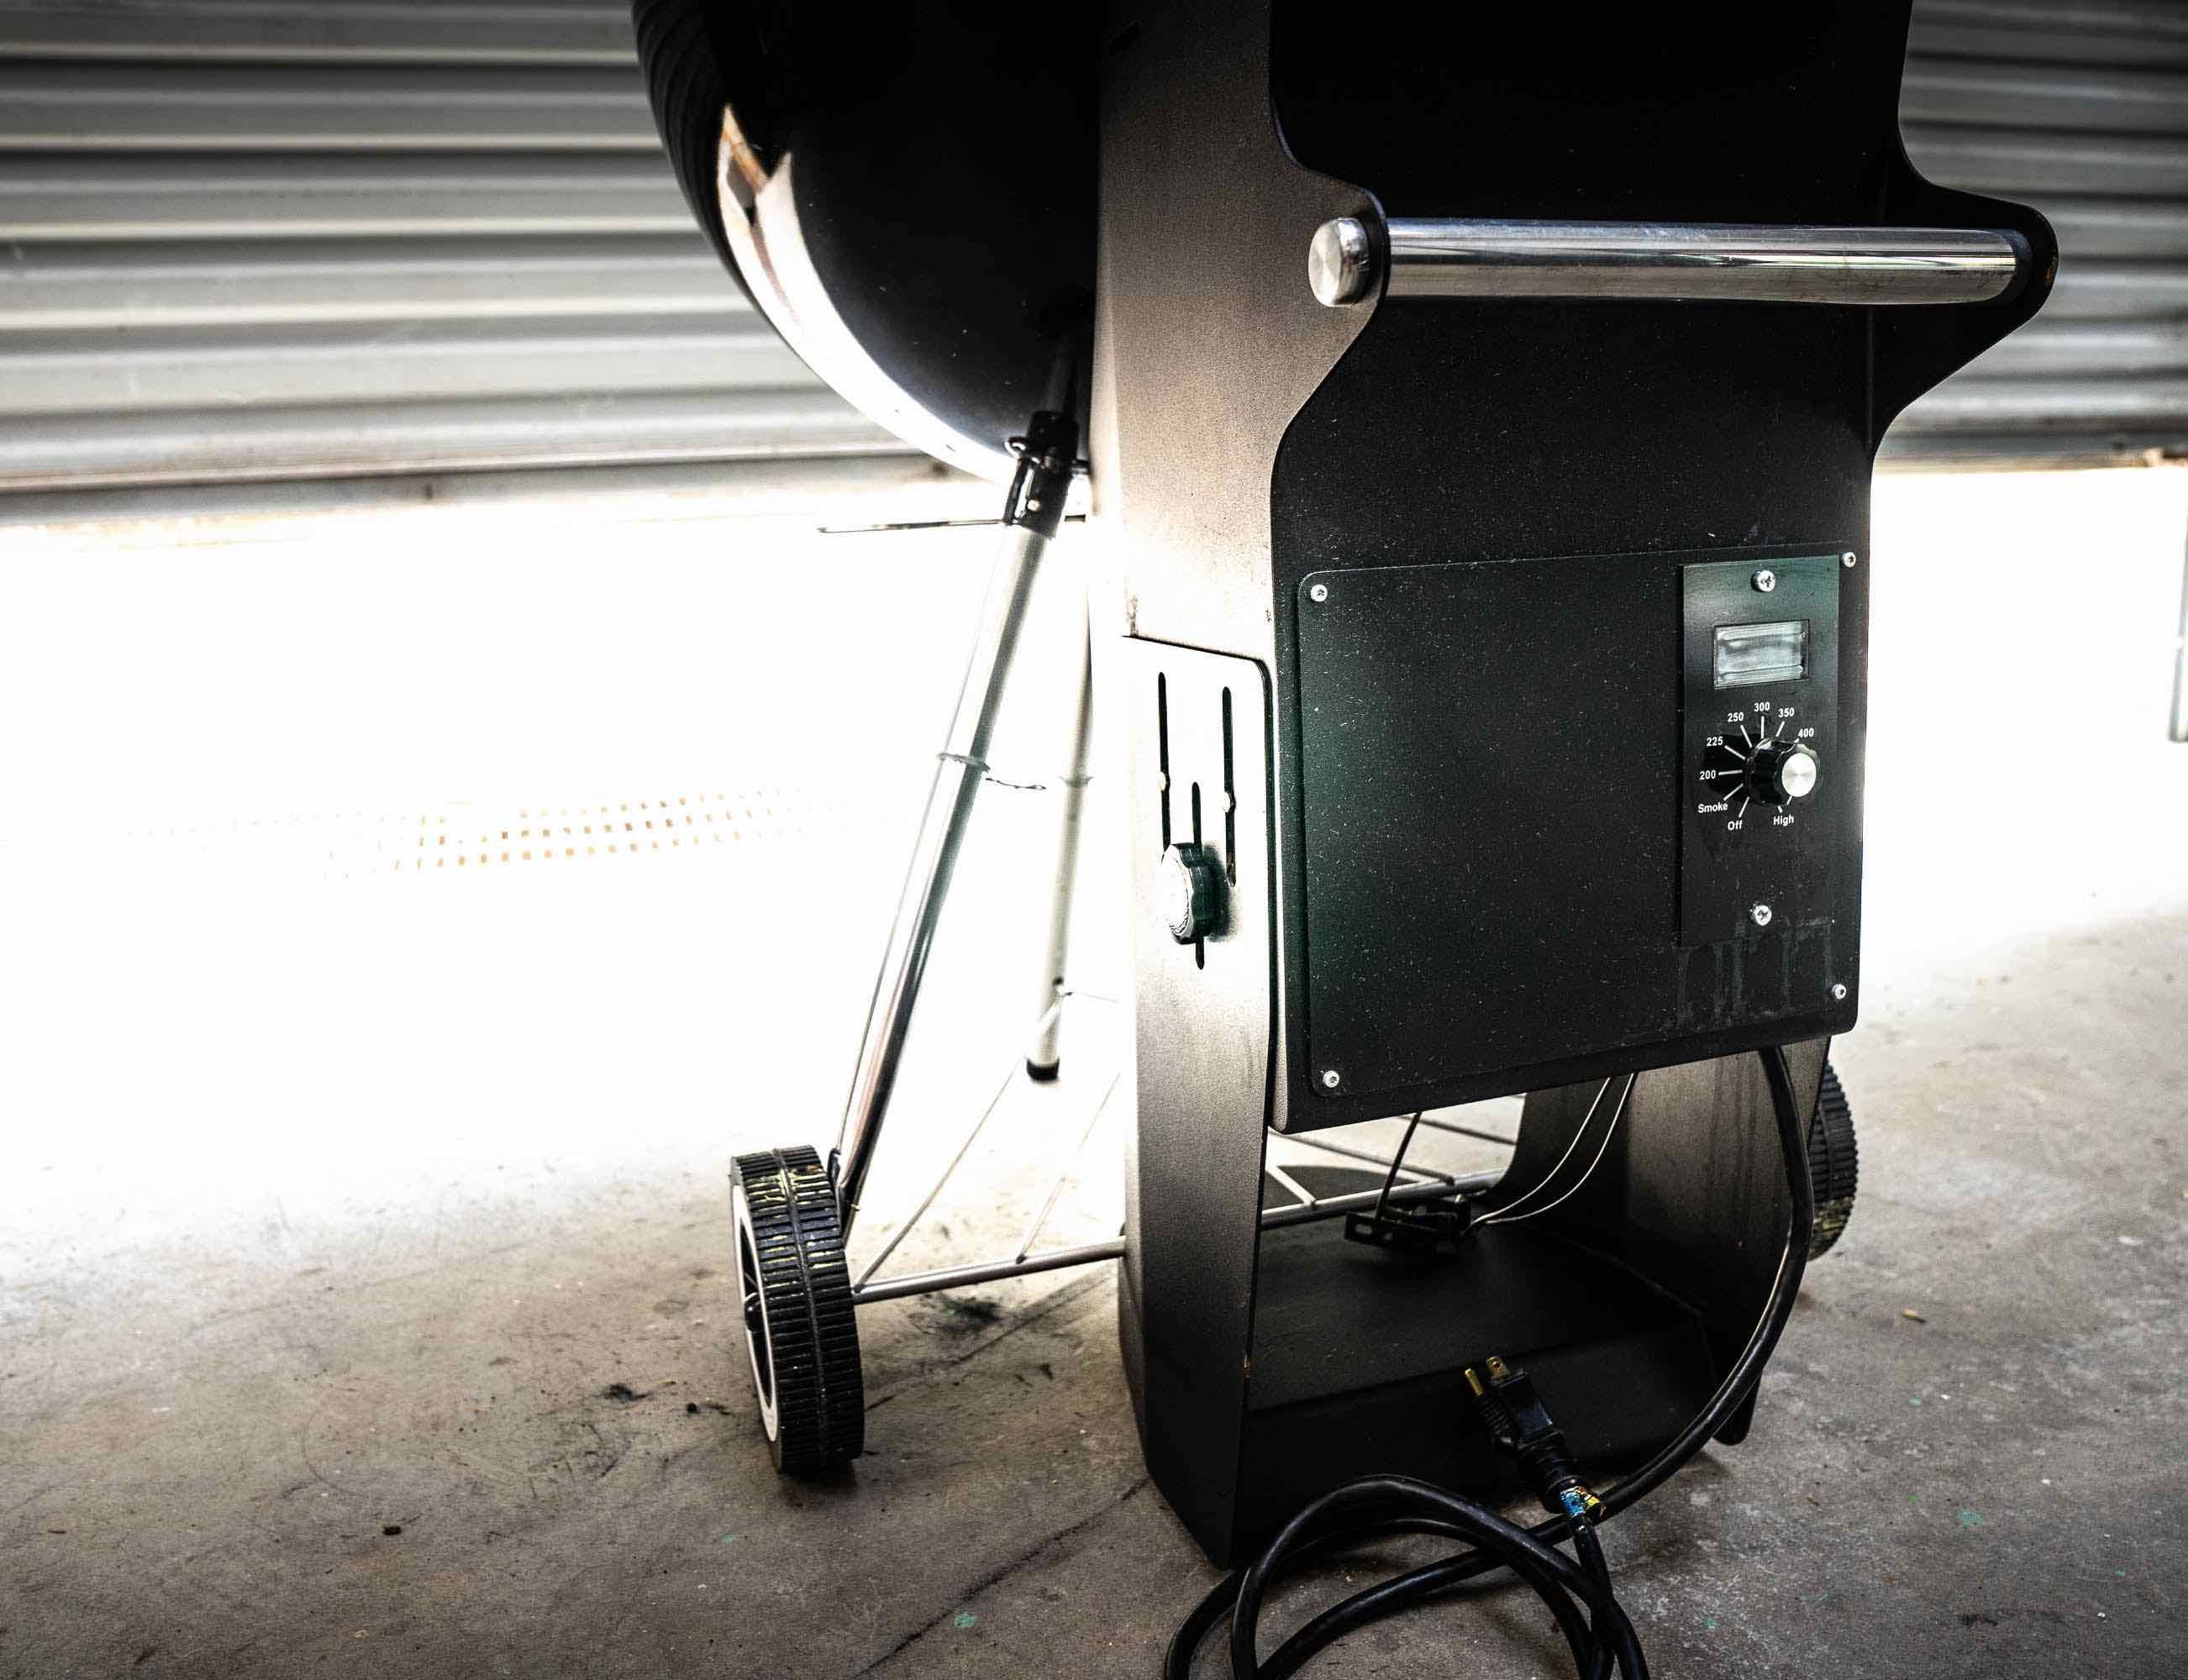 Pella Weber® Kettle Grill Pellet Adapter reaches up to 500°F